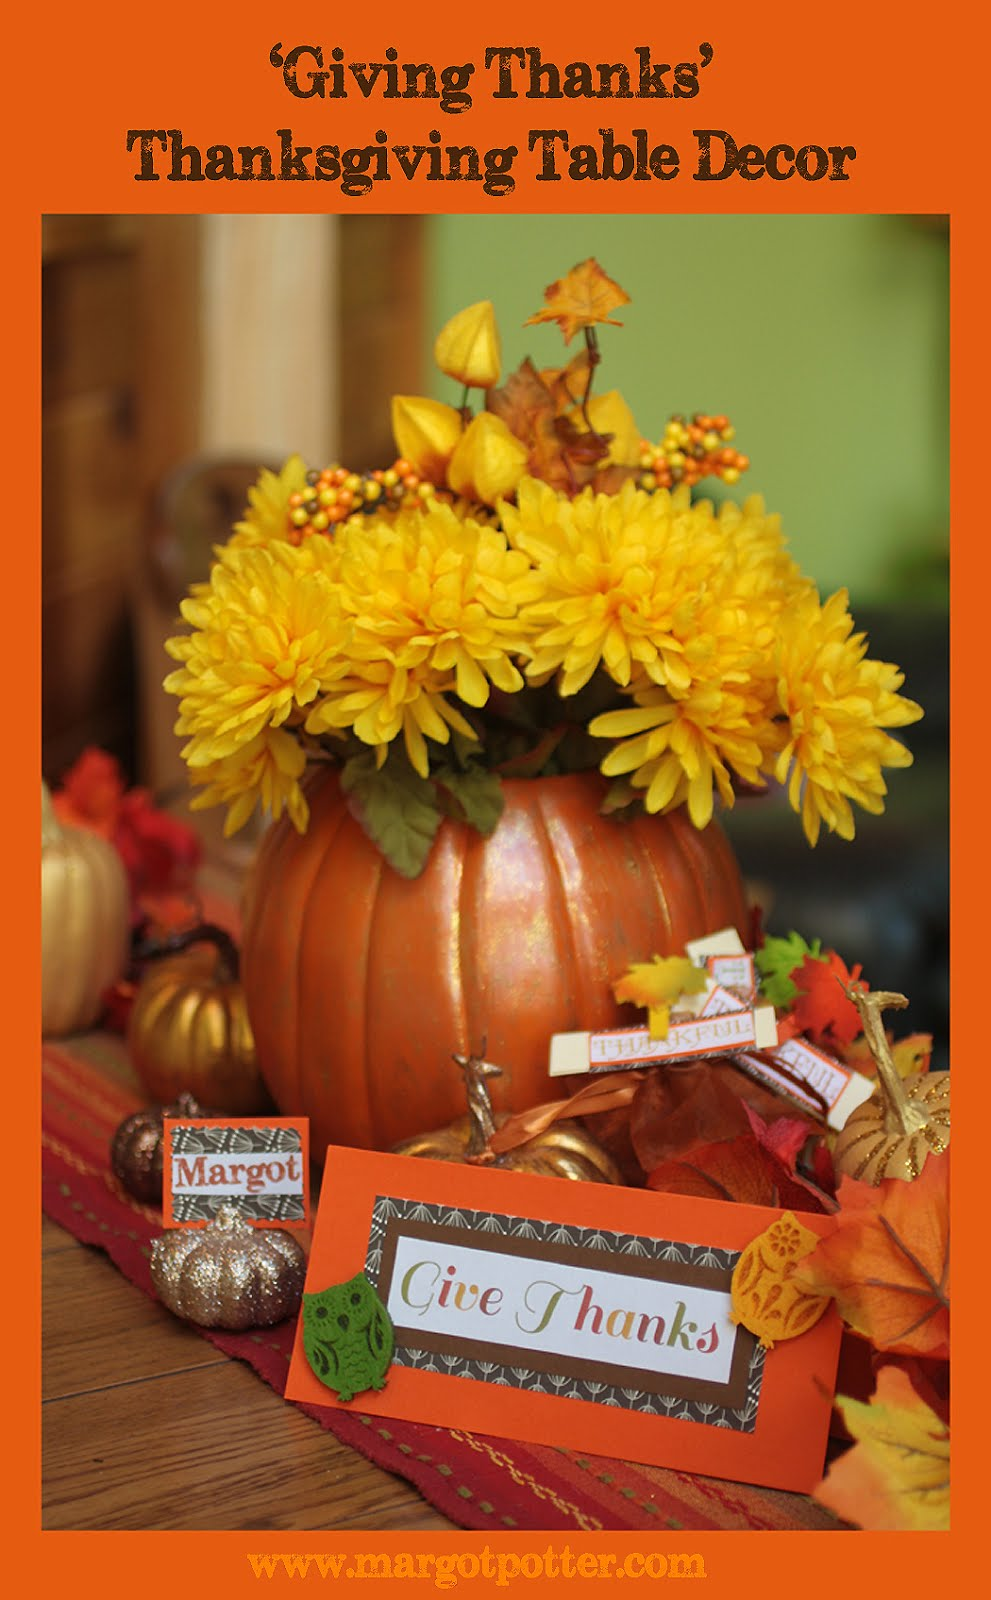 ilovetocreate blog giving thanks diy thanksgiving table decor